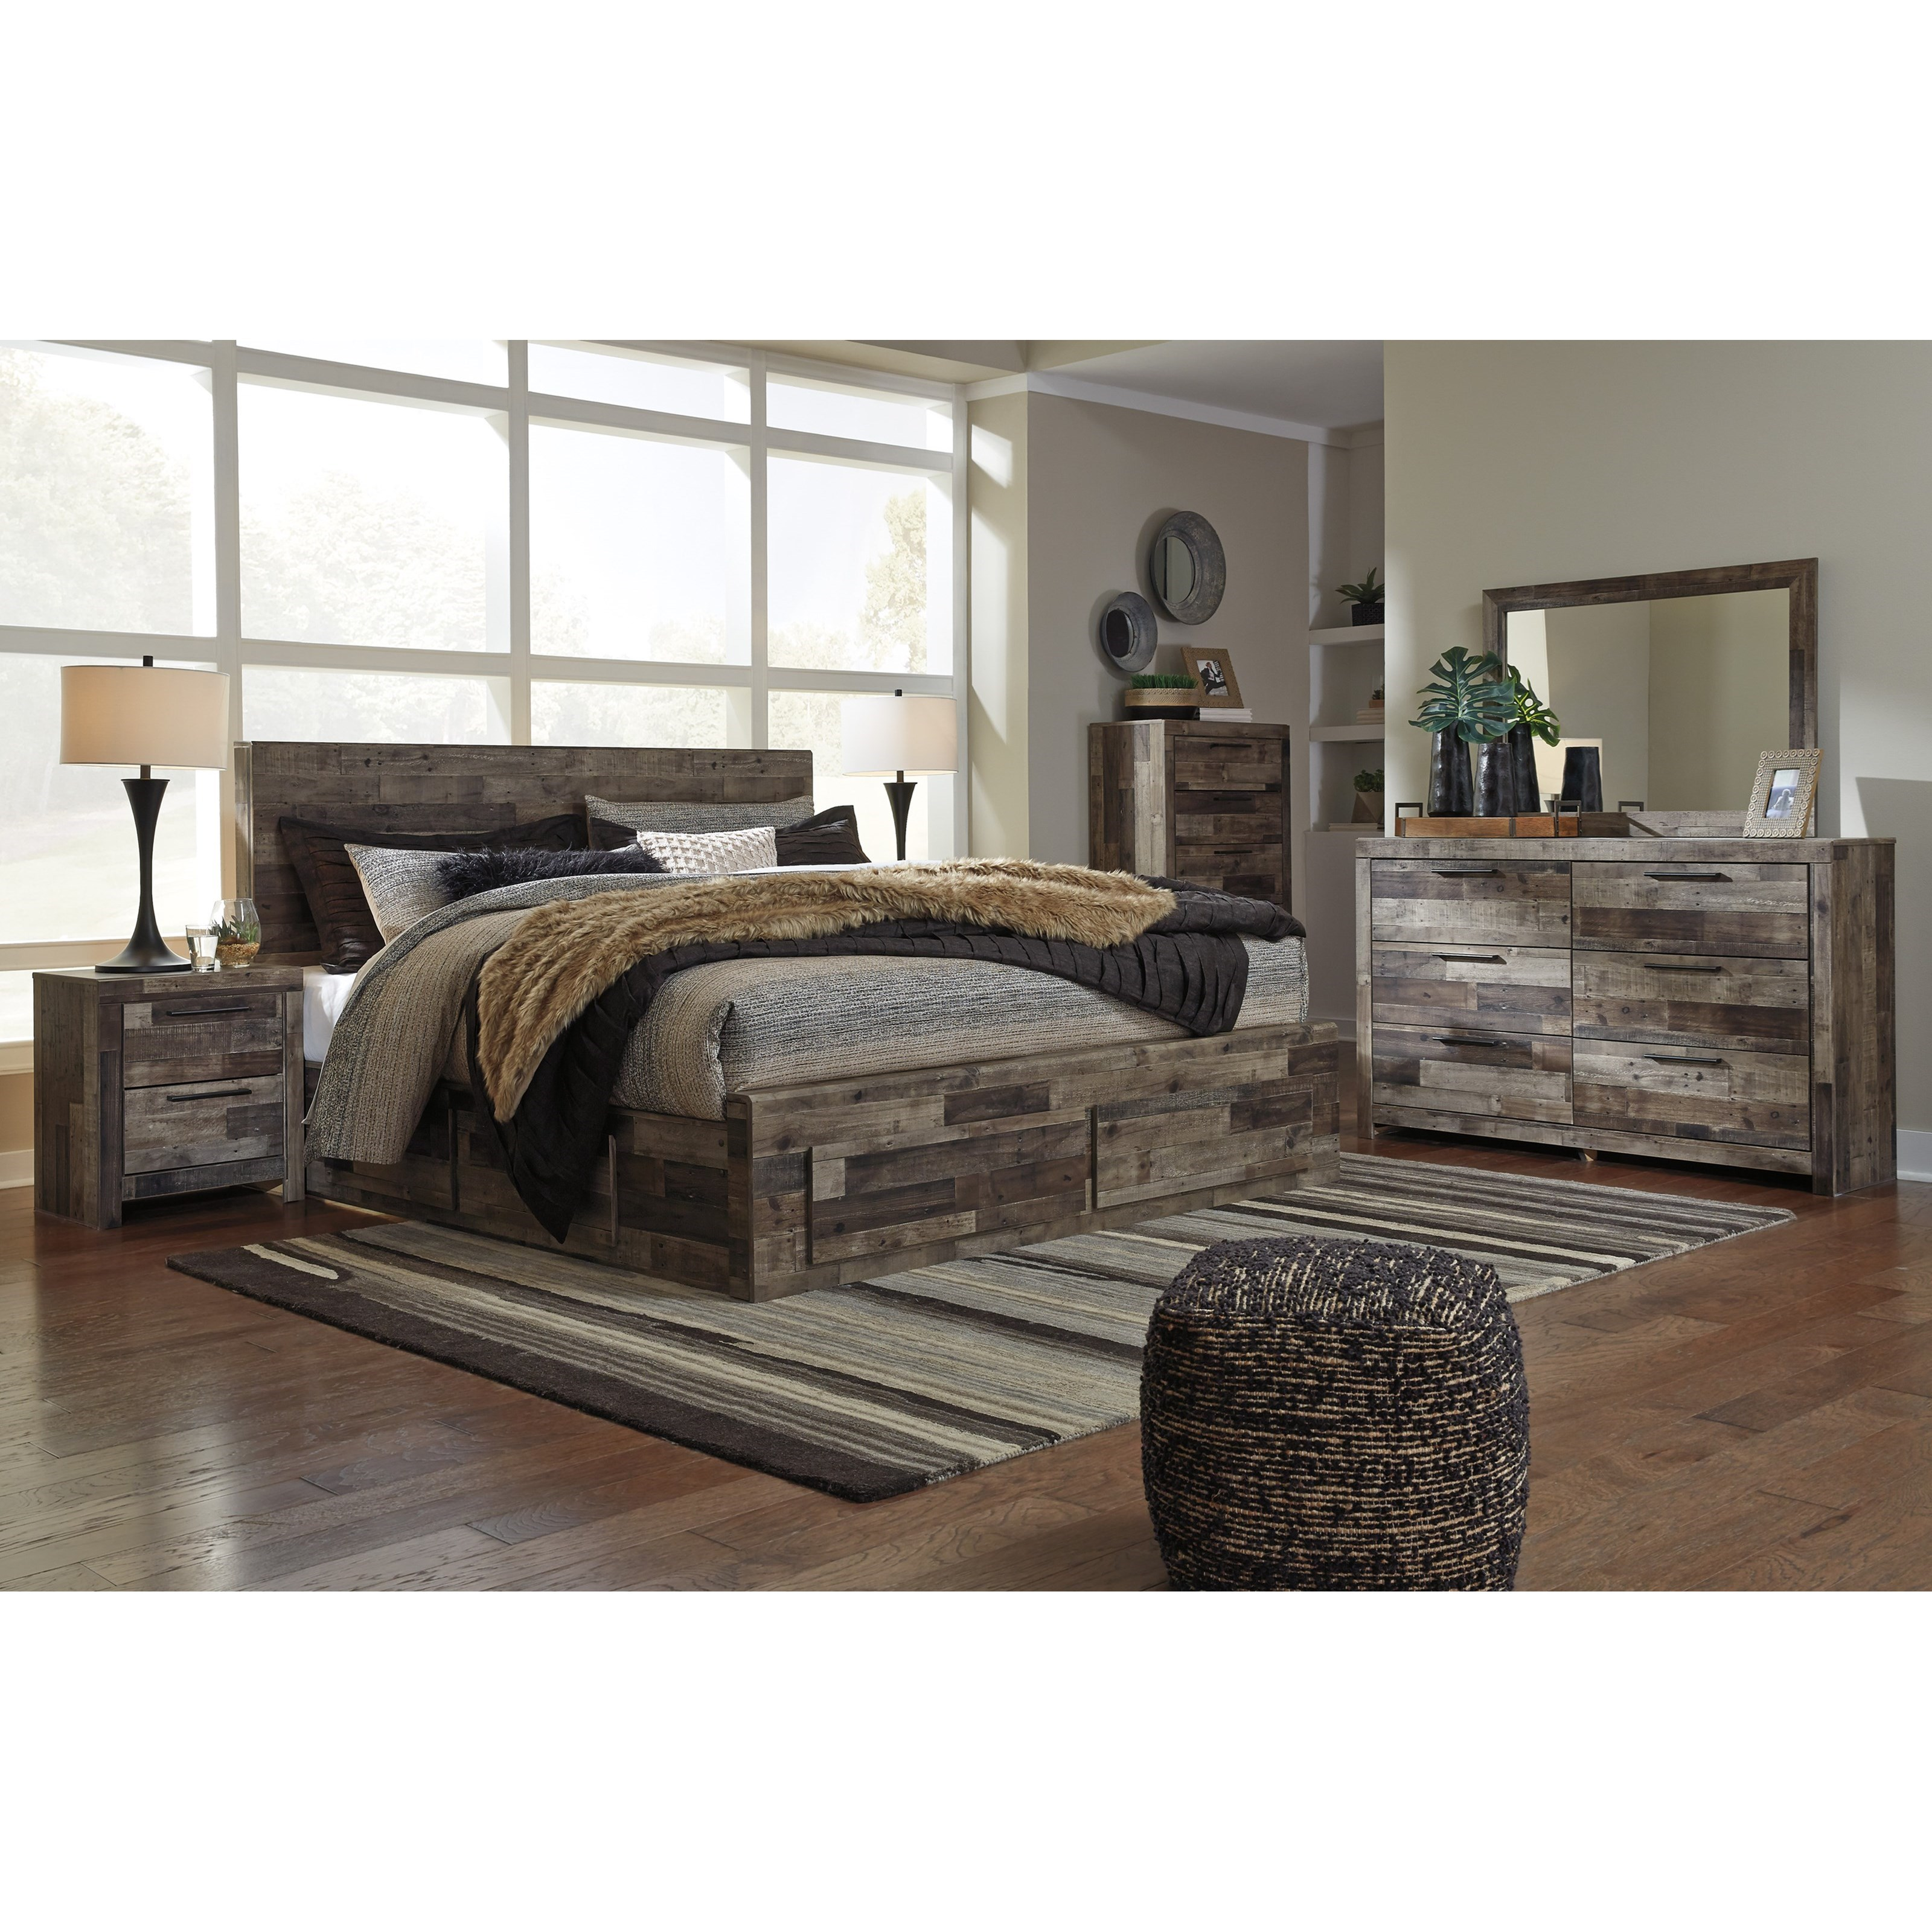 Derekson King Bedroom Group by Benchcraft at Northeast Factory Direct